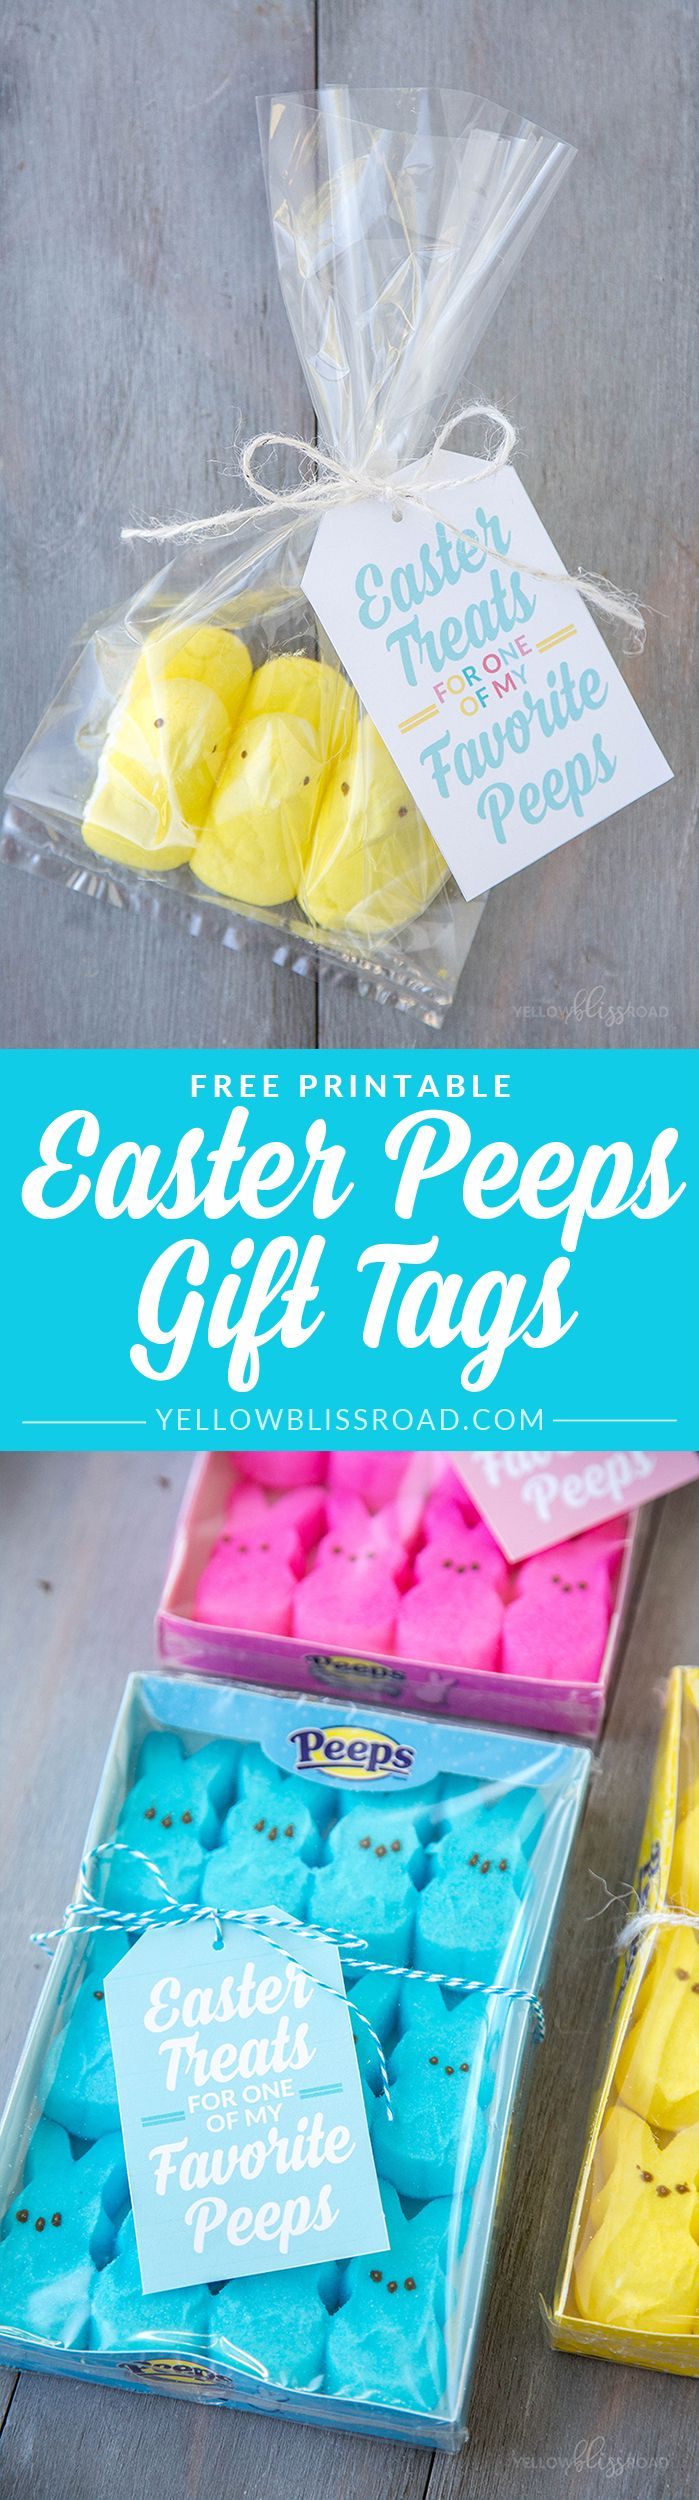 441 best primary images on pinterest valentine party valentines free printable peeps gifts tags for easter cute classroom friends or neighbor easter gifts negle Images